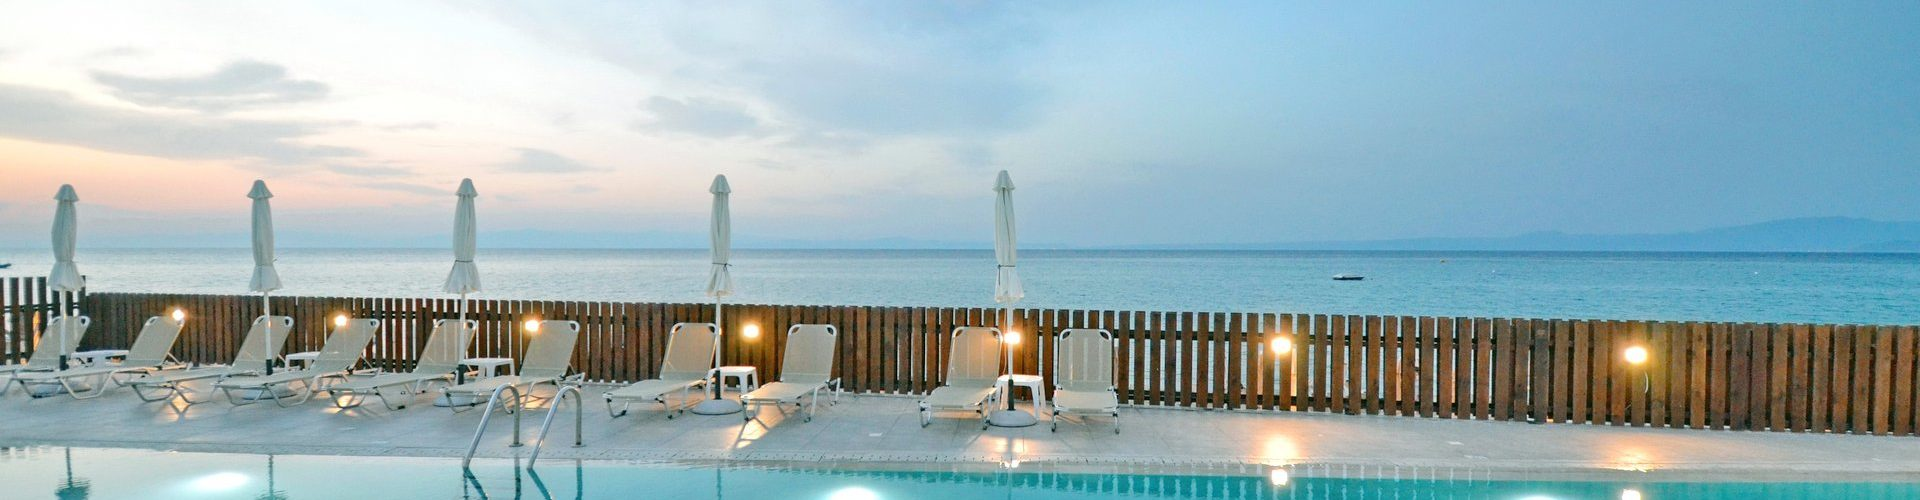 Sousouras Hotel Pool 19